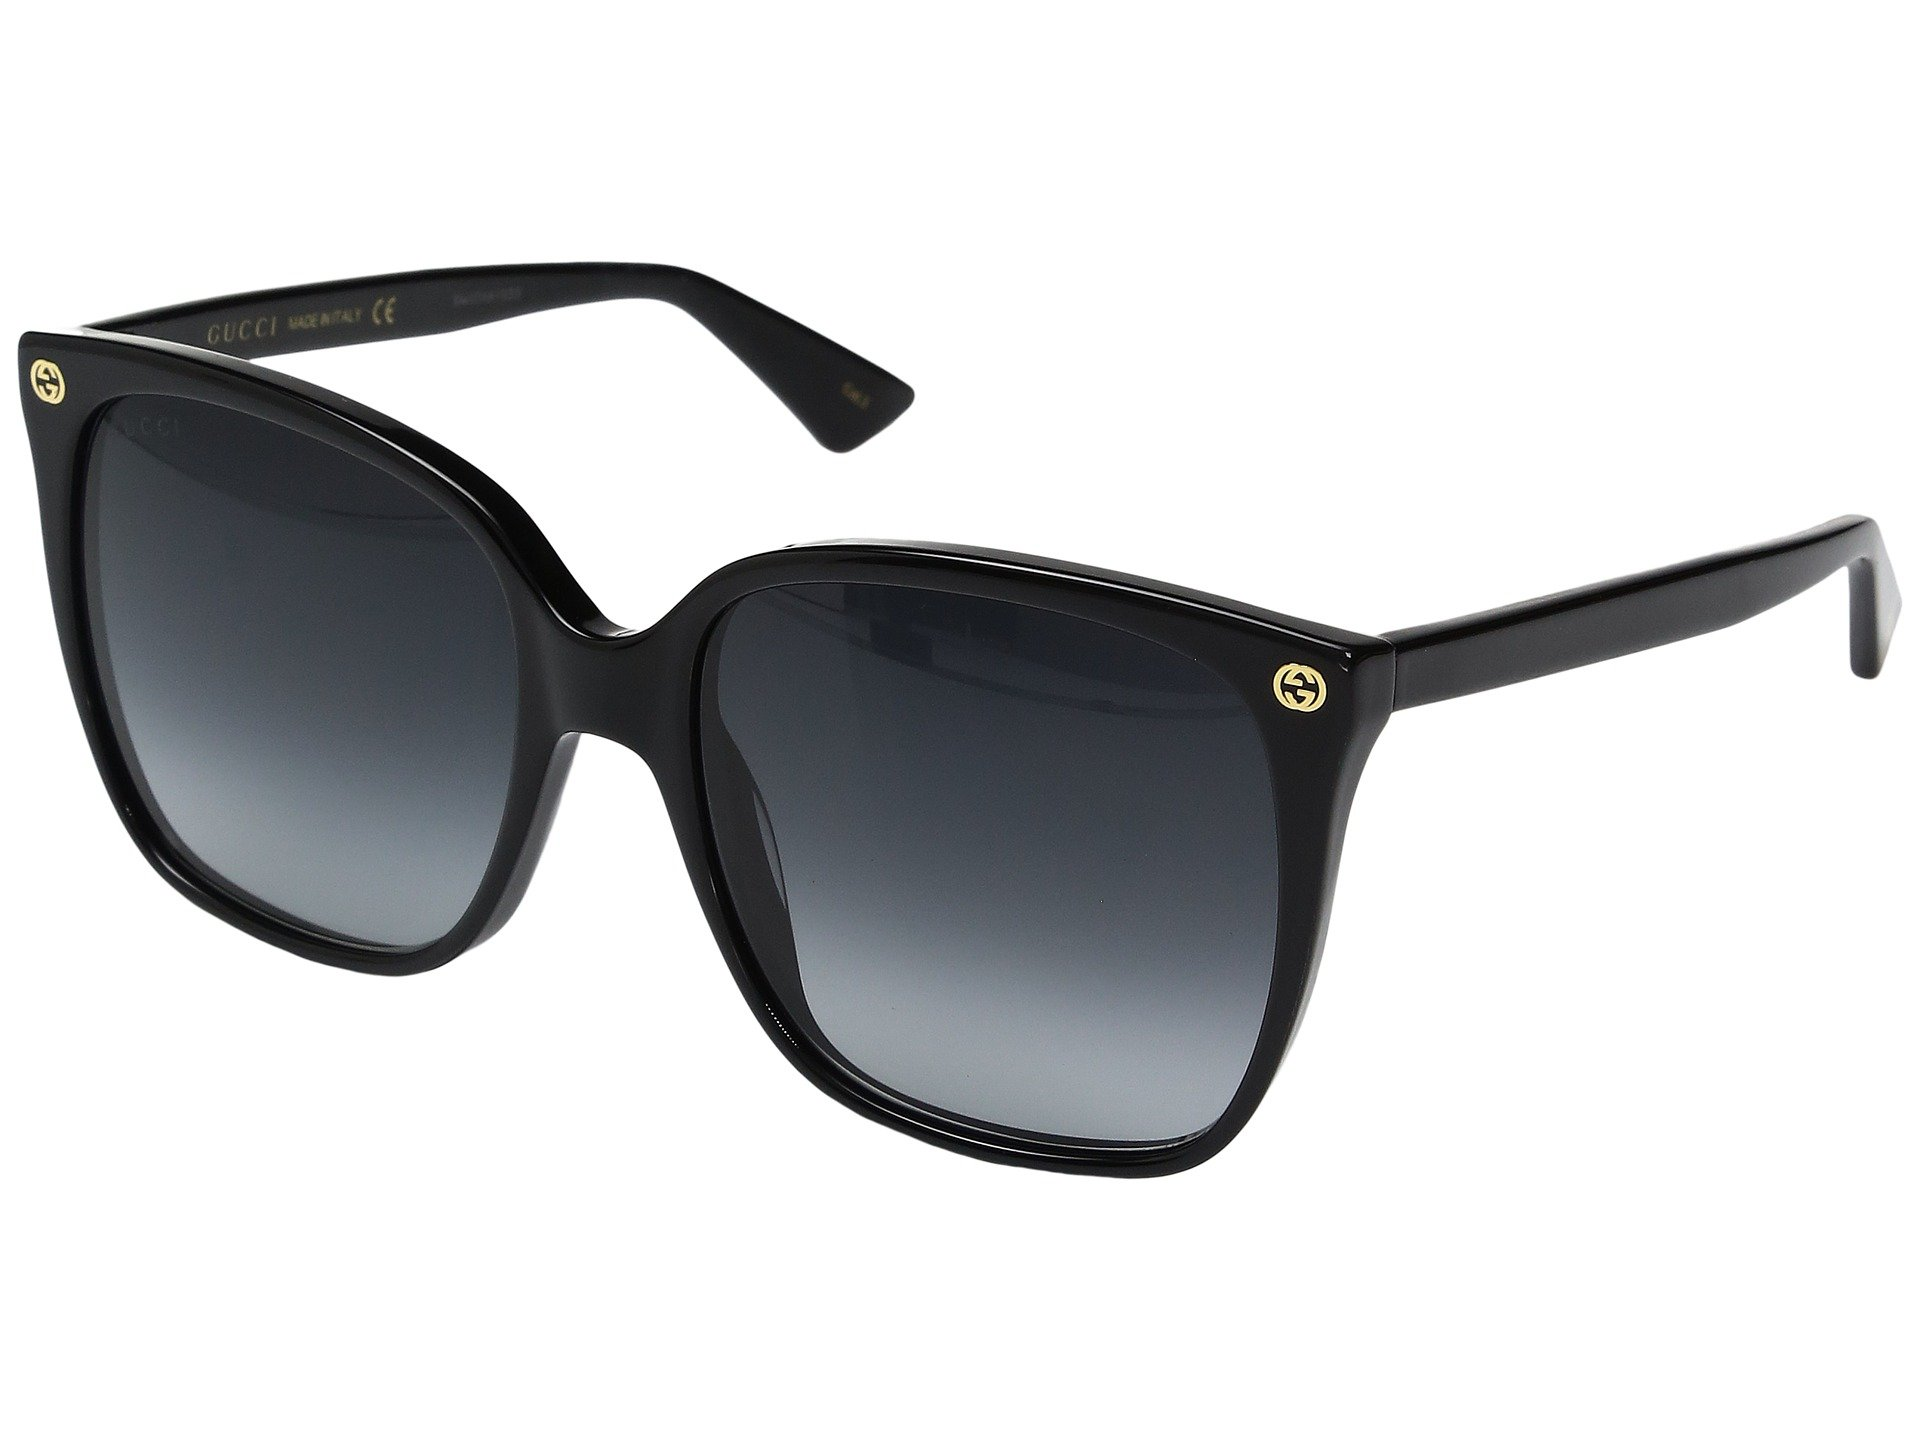 c9a45476318 Gucci GG0022S at Luxury.Zappos.com